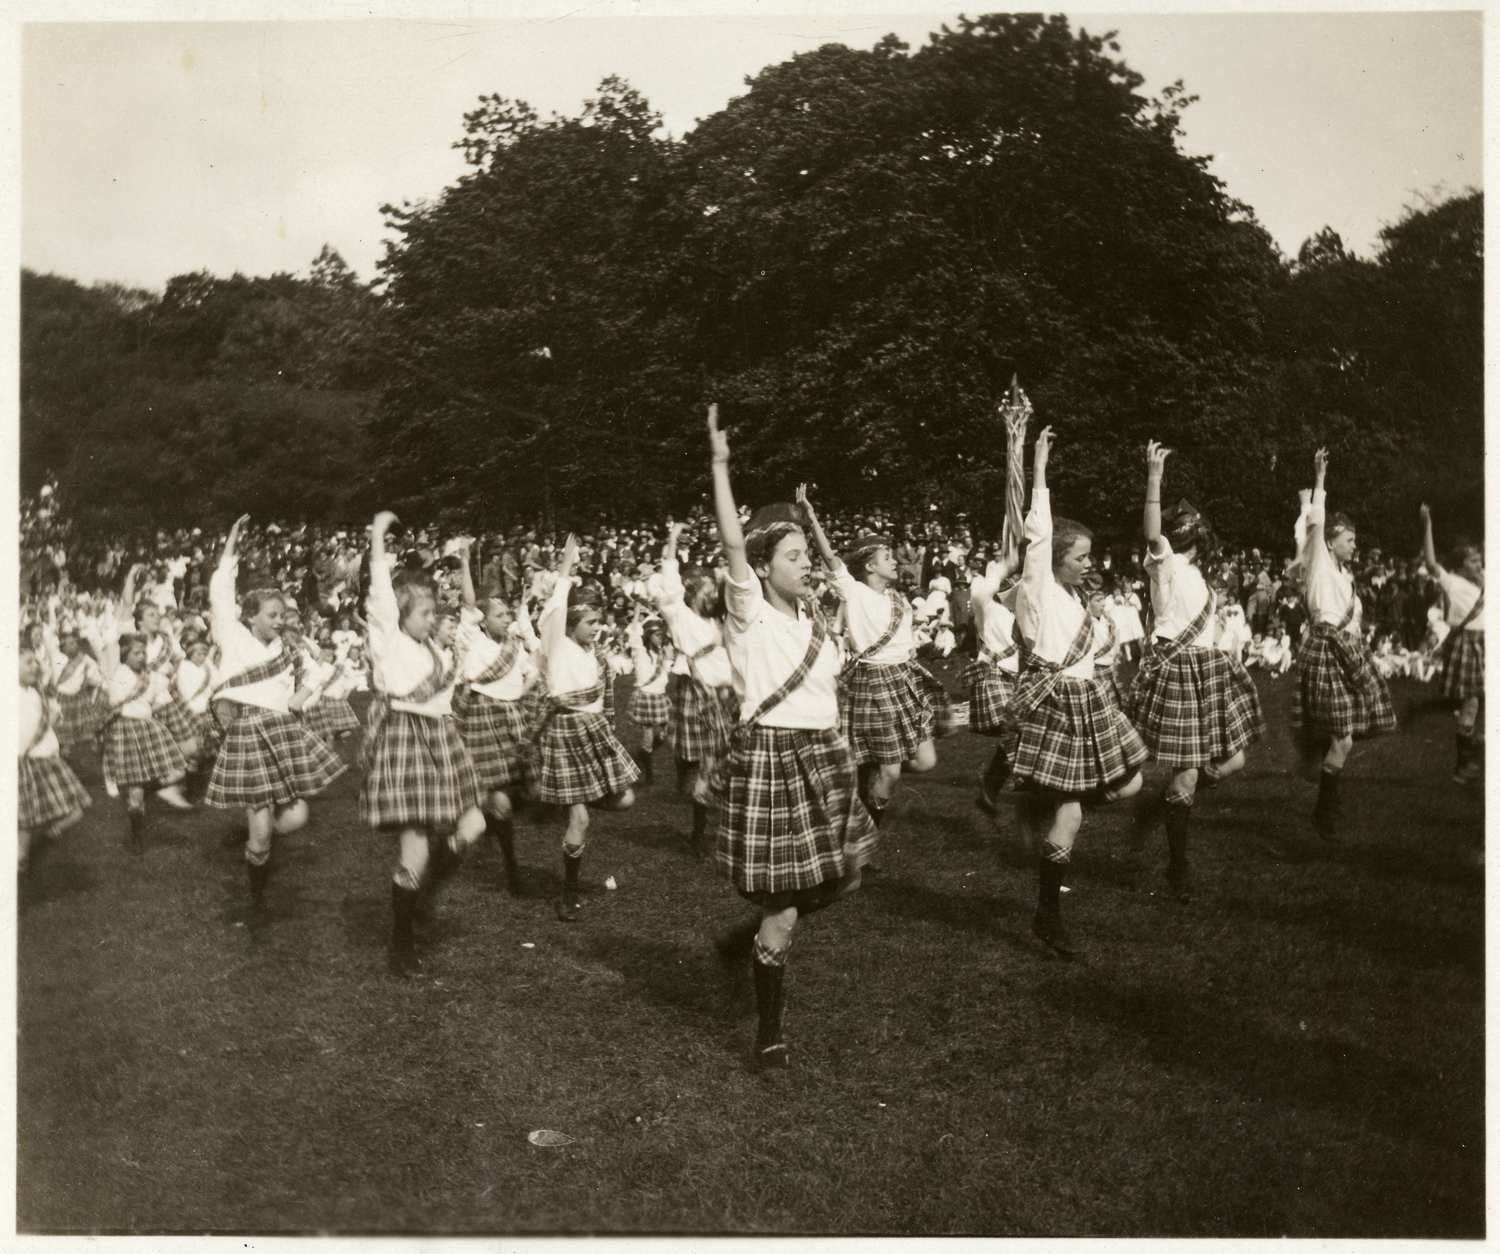 Felix J. Koch, Celtic Dance at May Day Celebration, May, 1921. Gelatin silver print, 4 x 5 inches. Courtesy of Cincinnati Museum Center History Library and Archives